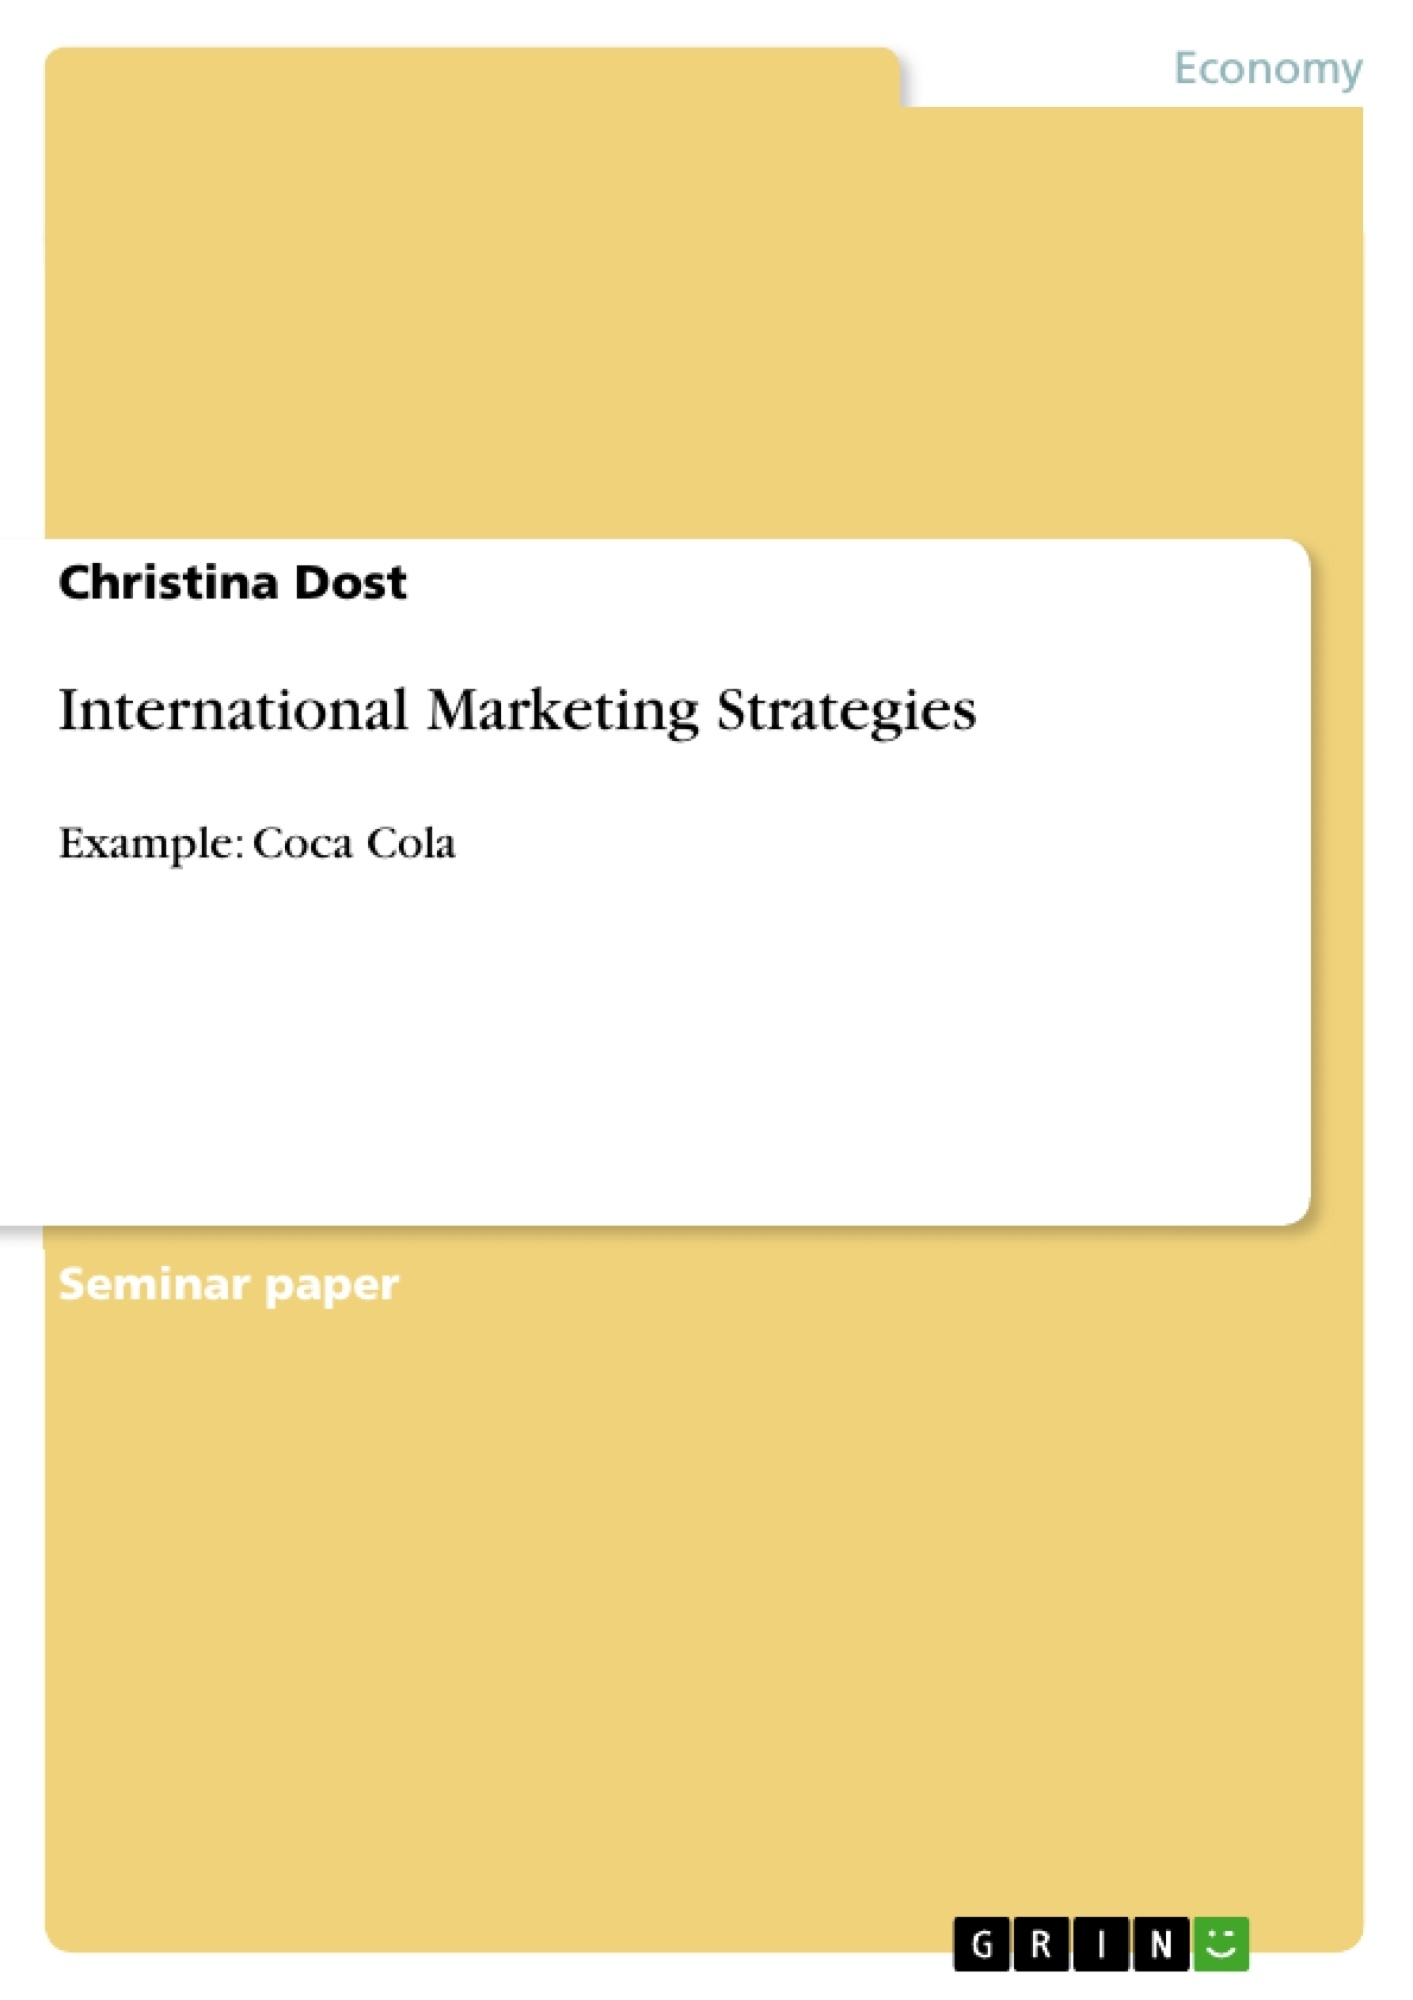 international marketing paper